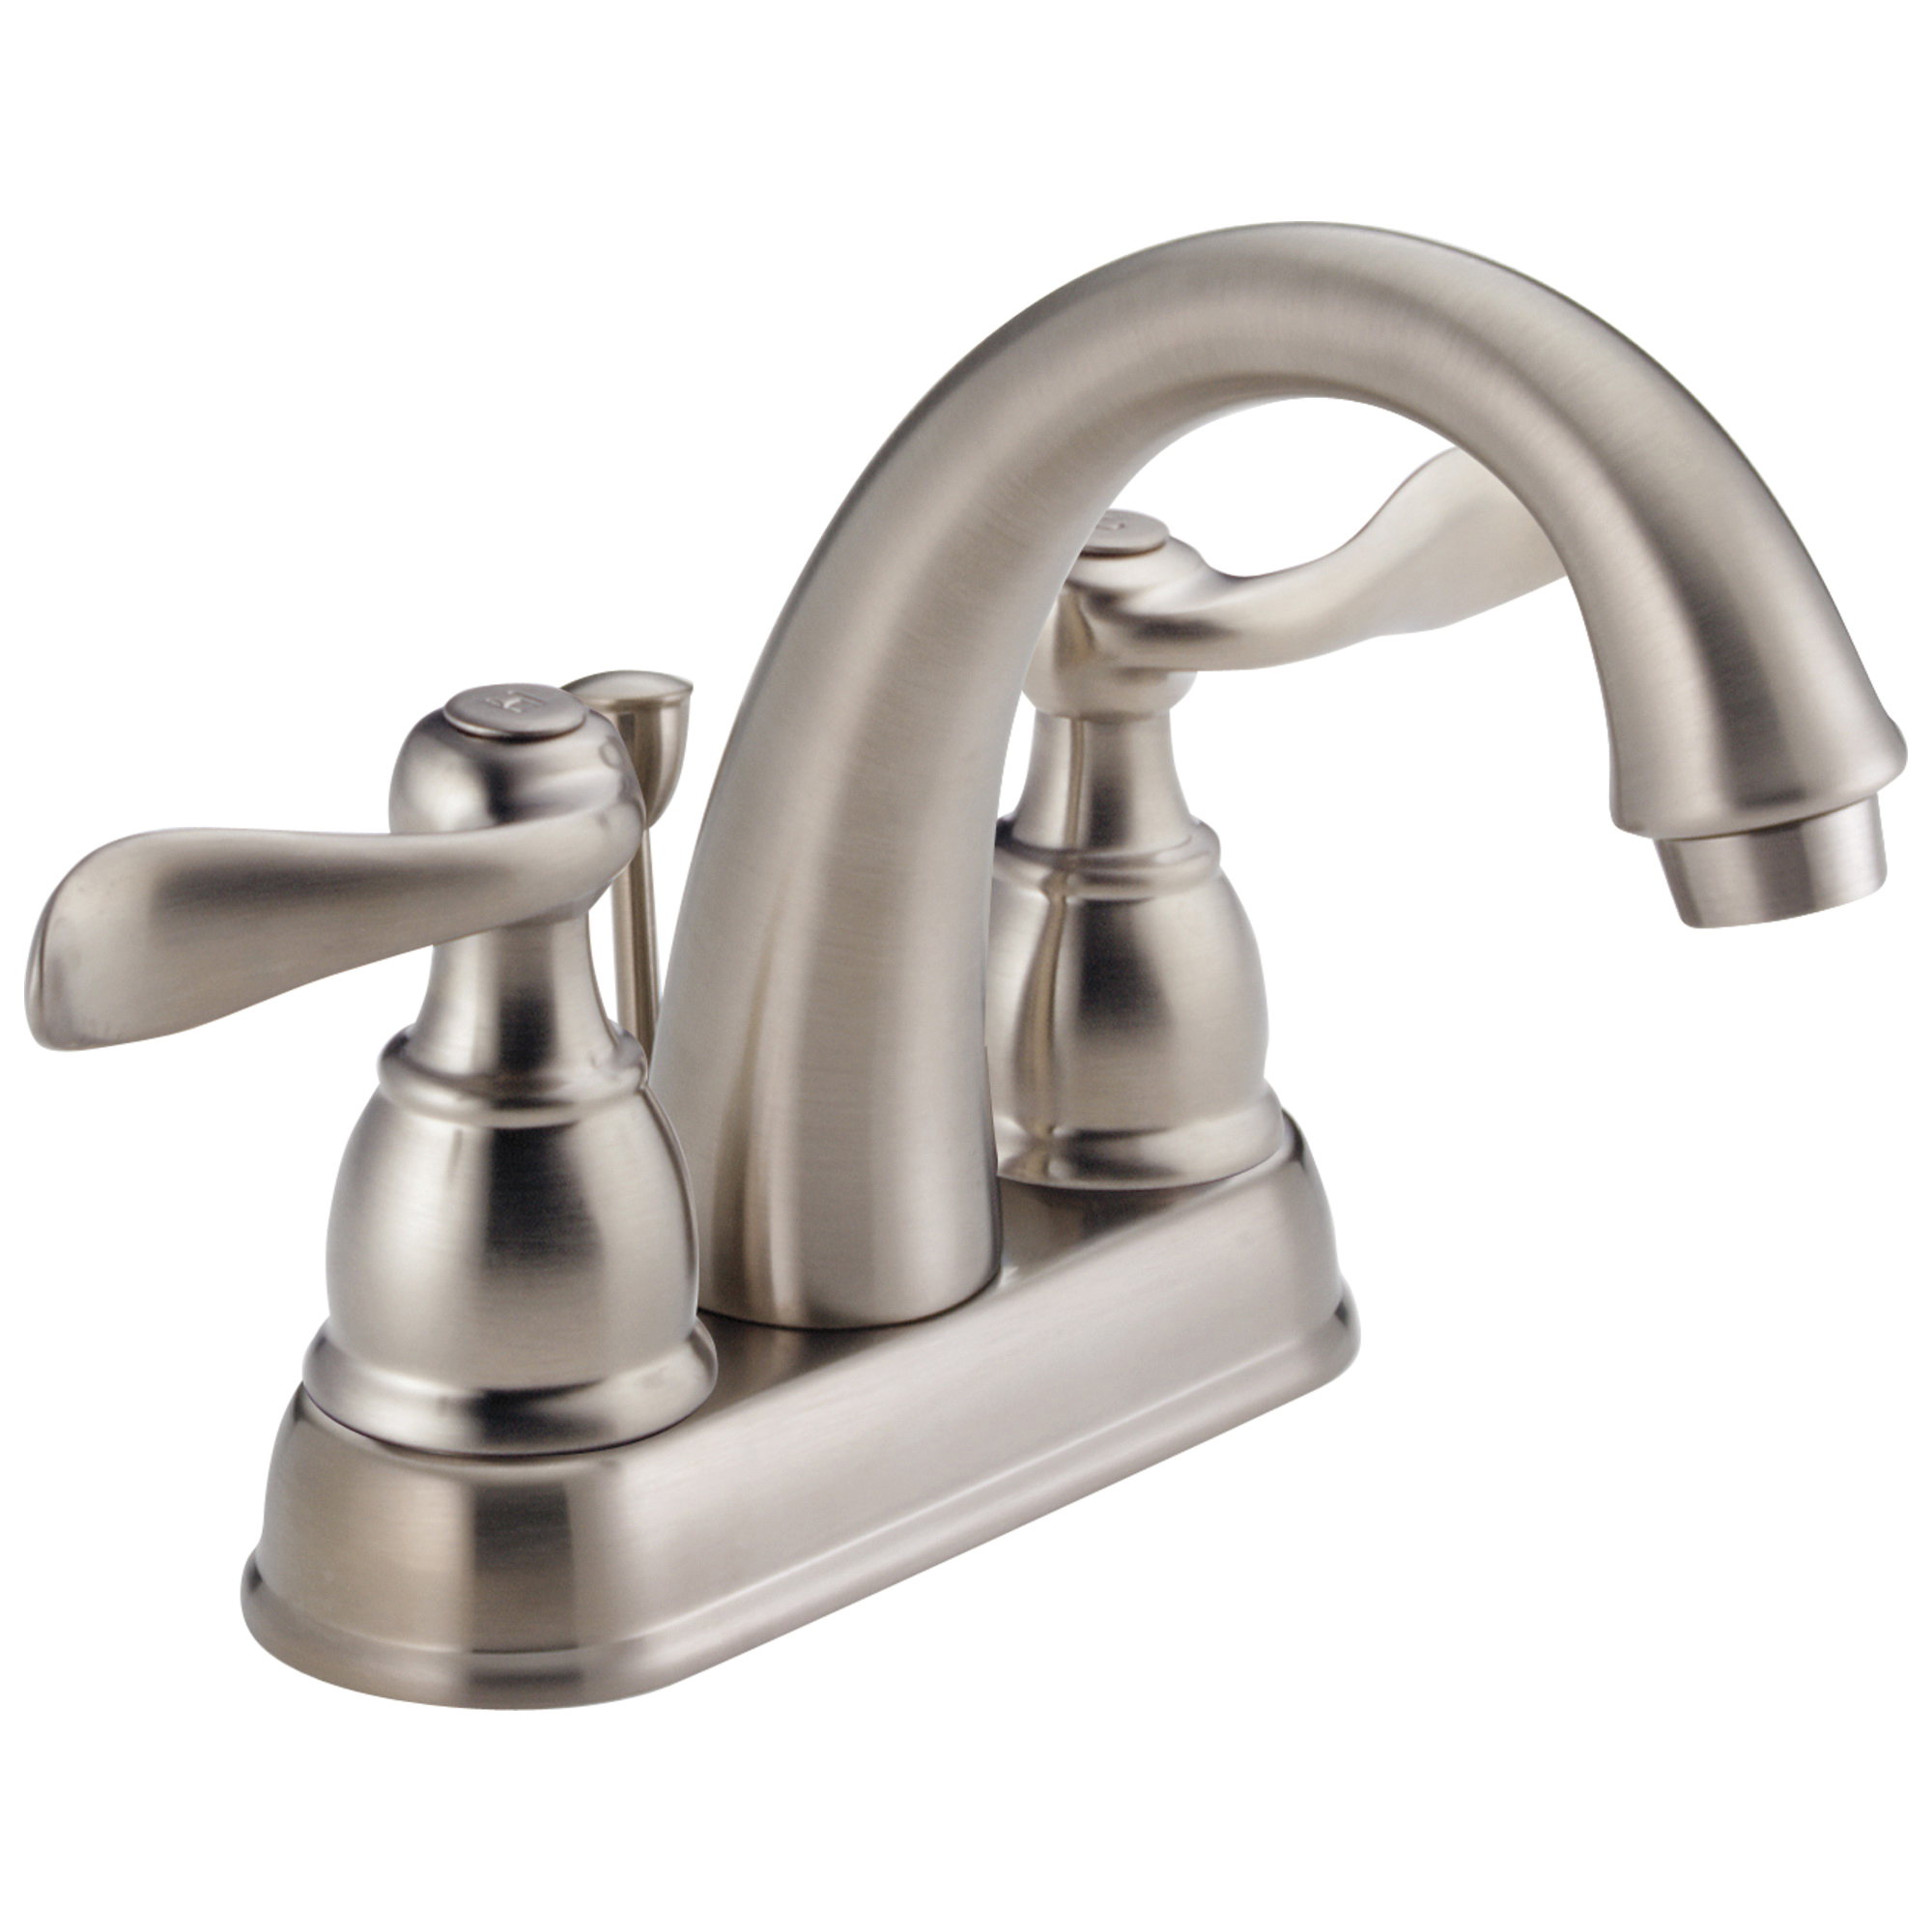 DELTA® B2596LF-SS Centerset Lavatory Faucet, Windemere®, Stainless Steel, 2 Handles, Metal Pop-Up Drain, 1.2 gpm